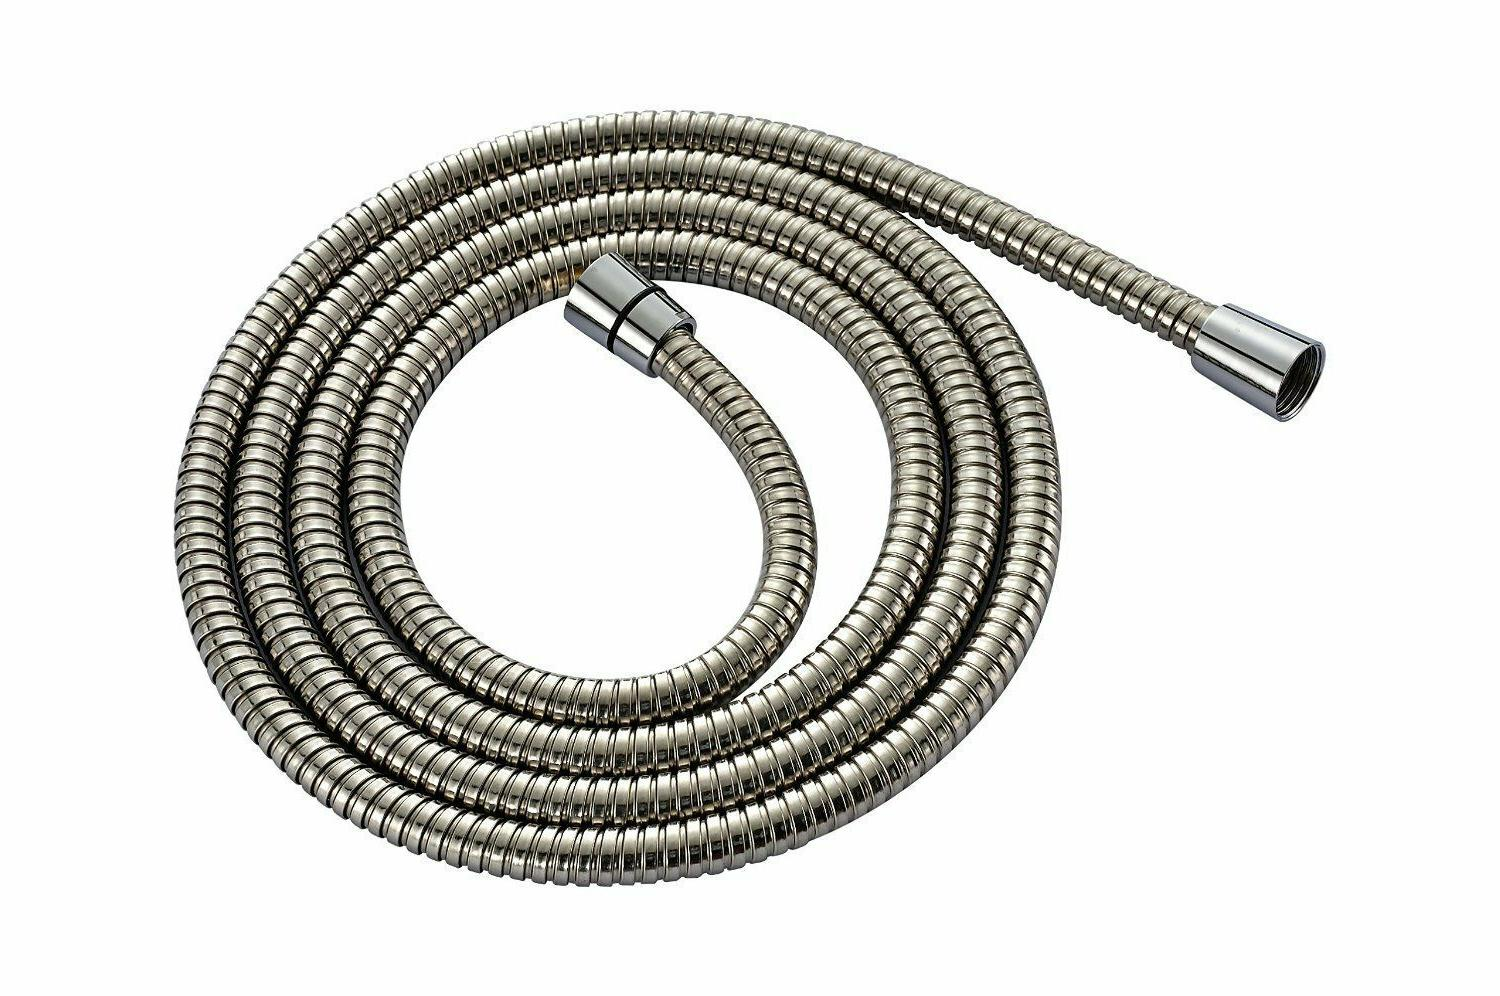 Extra Long Shower Hose 96 Inch Brushed Nickel Stainless Stee